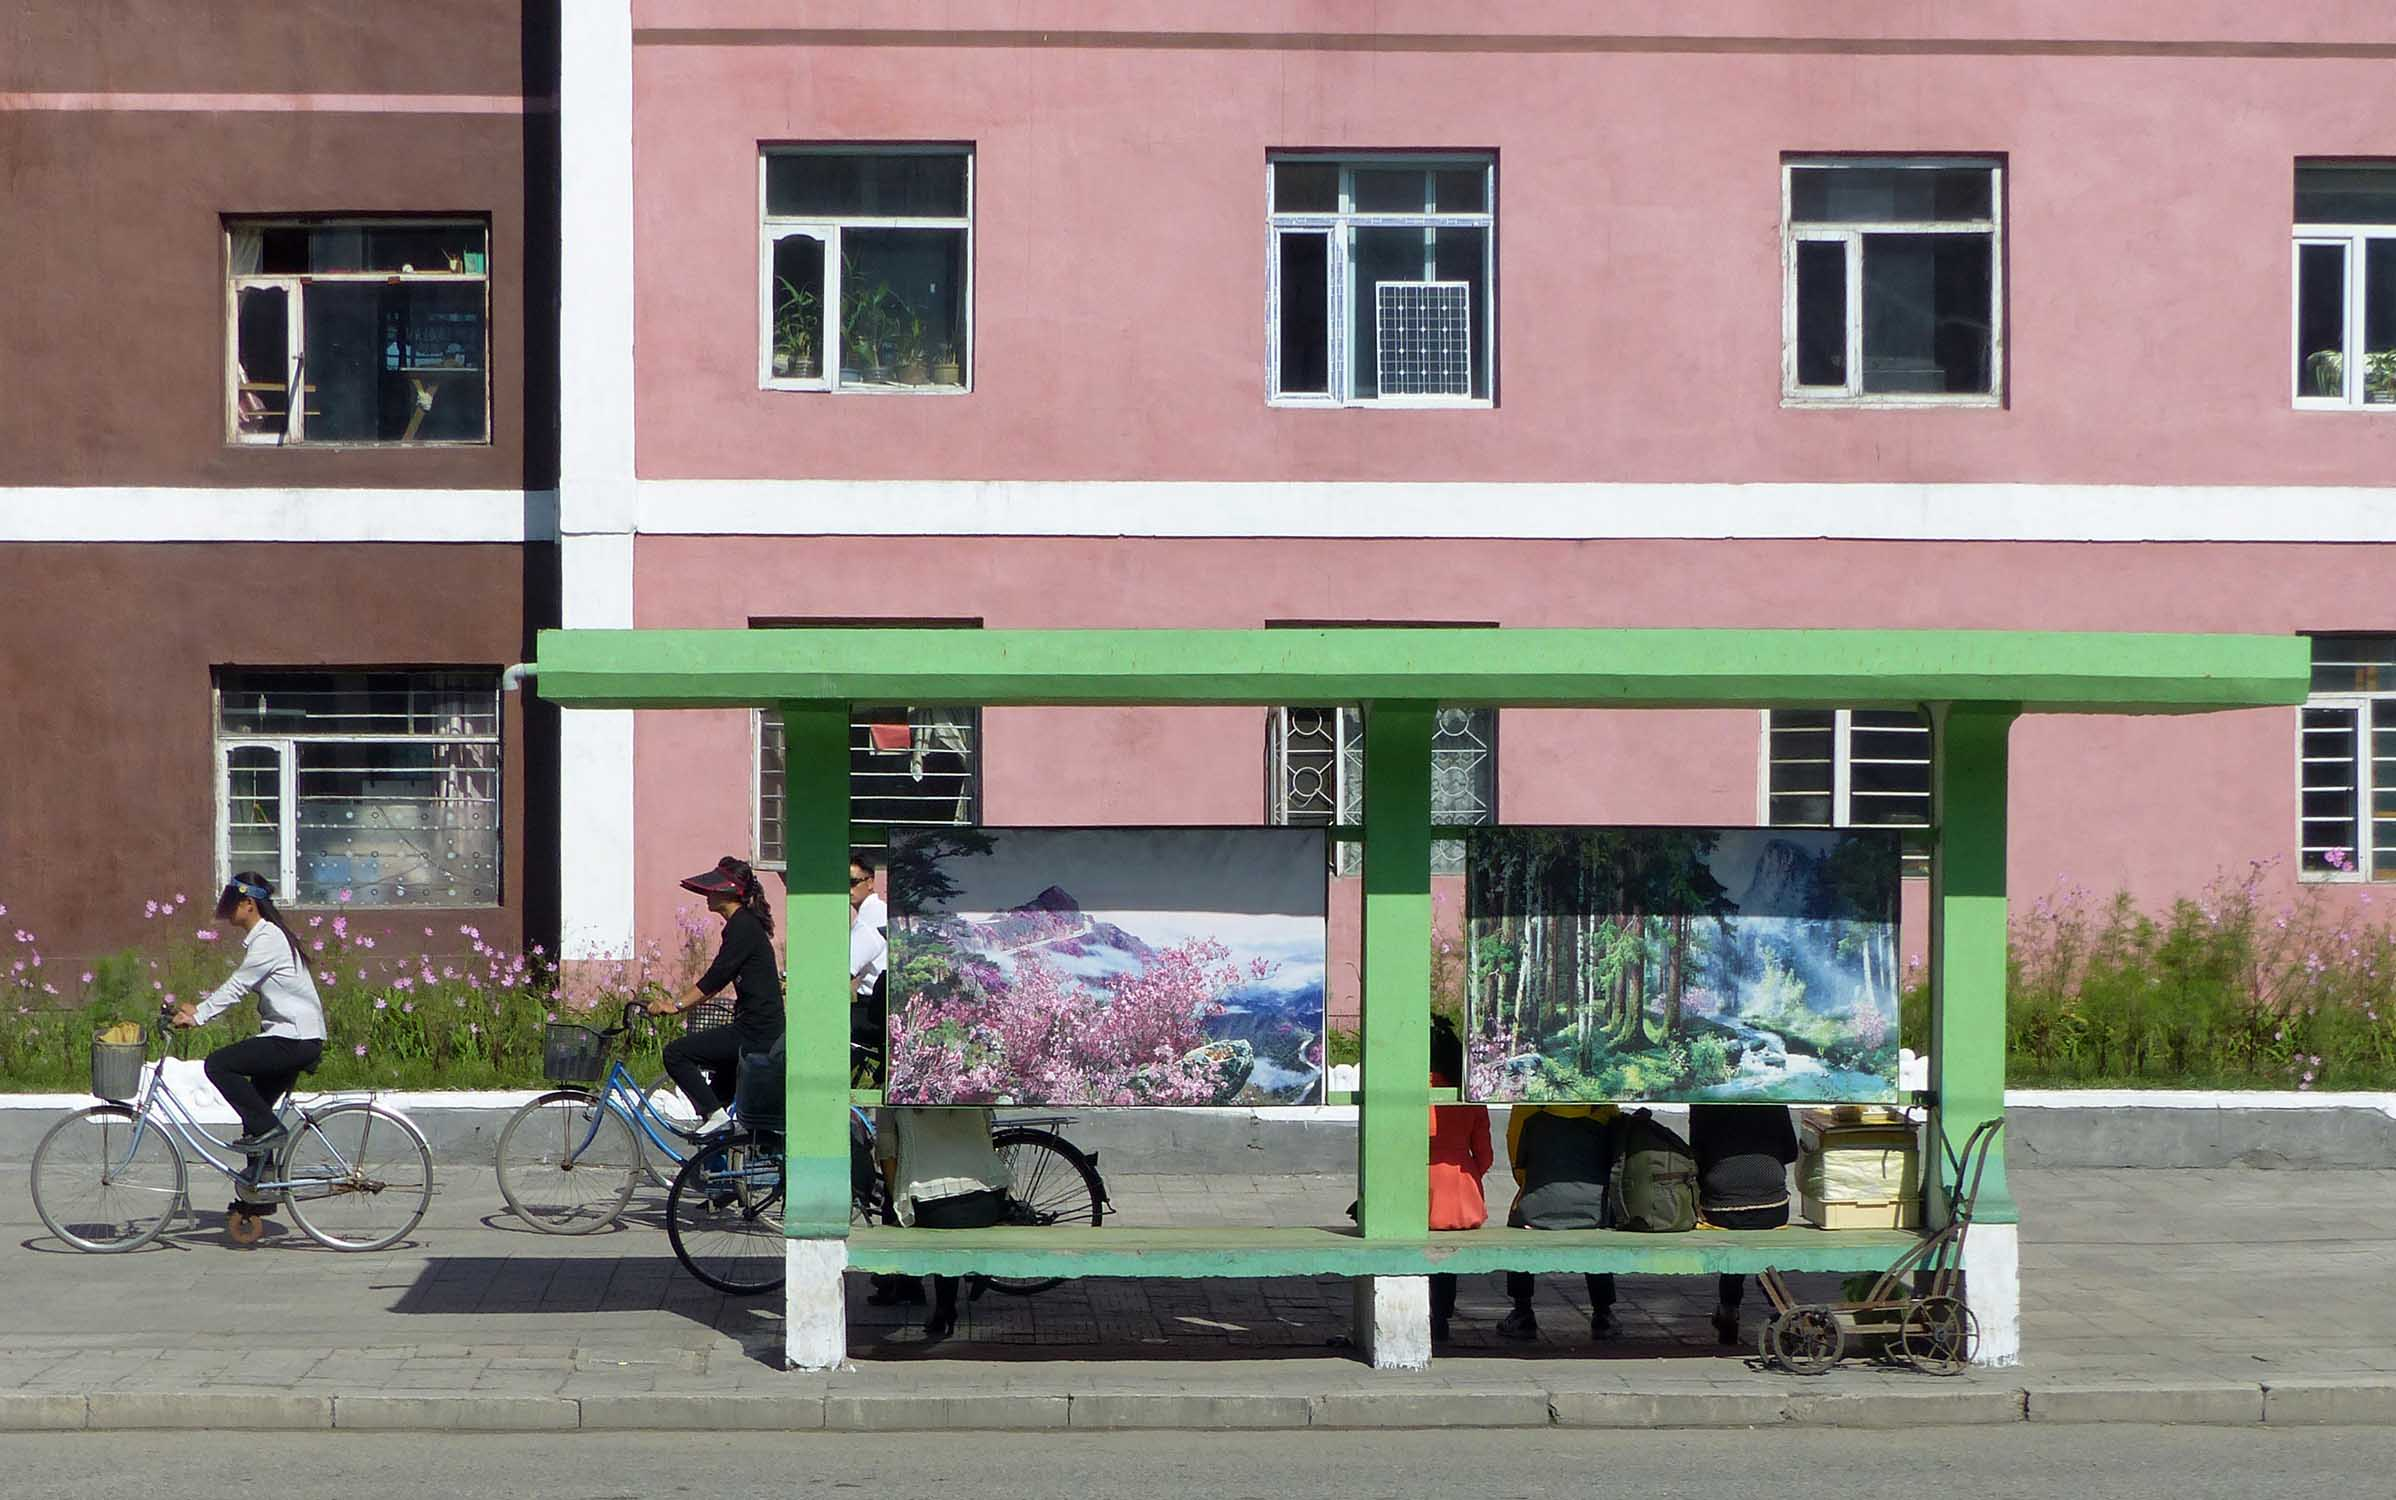 Green painted bus stop